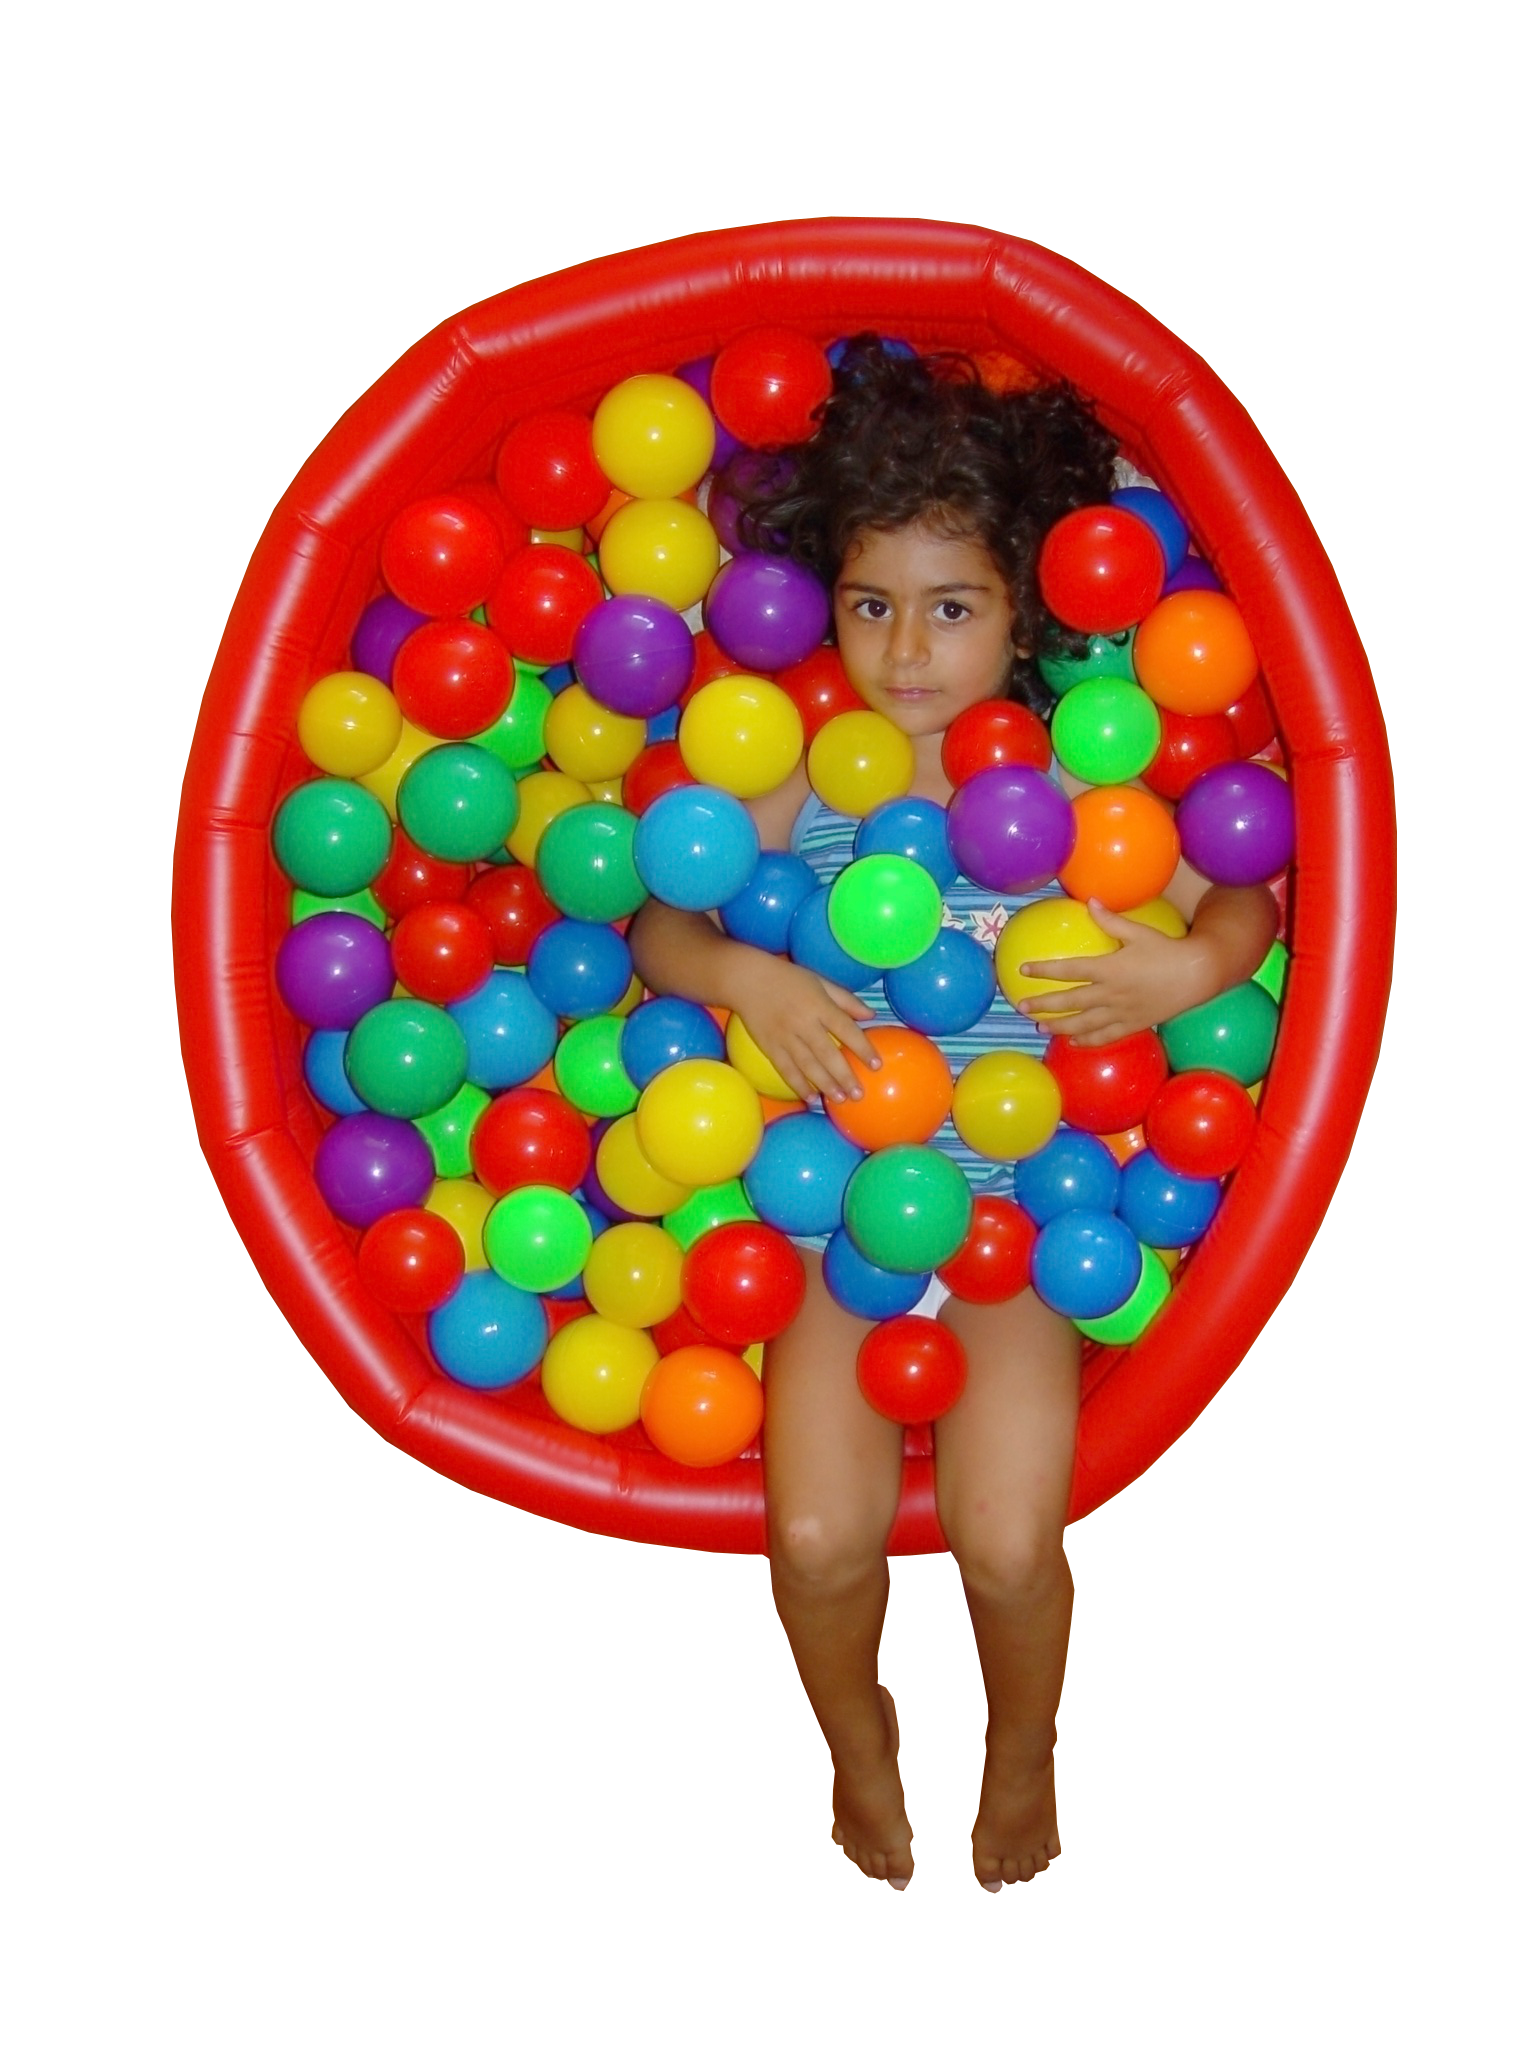 Ball pit png. File year old girl